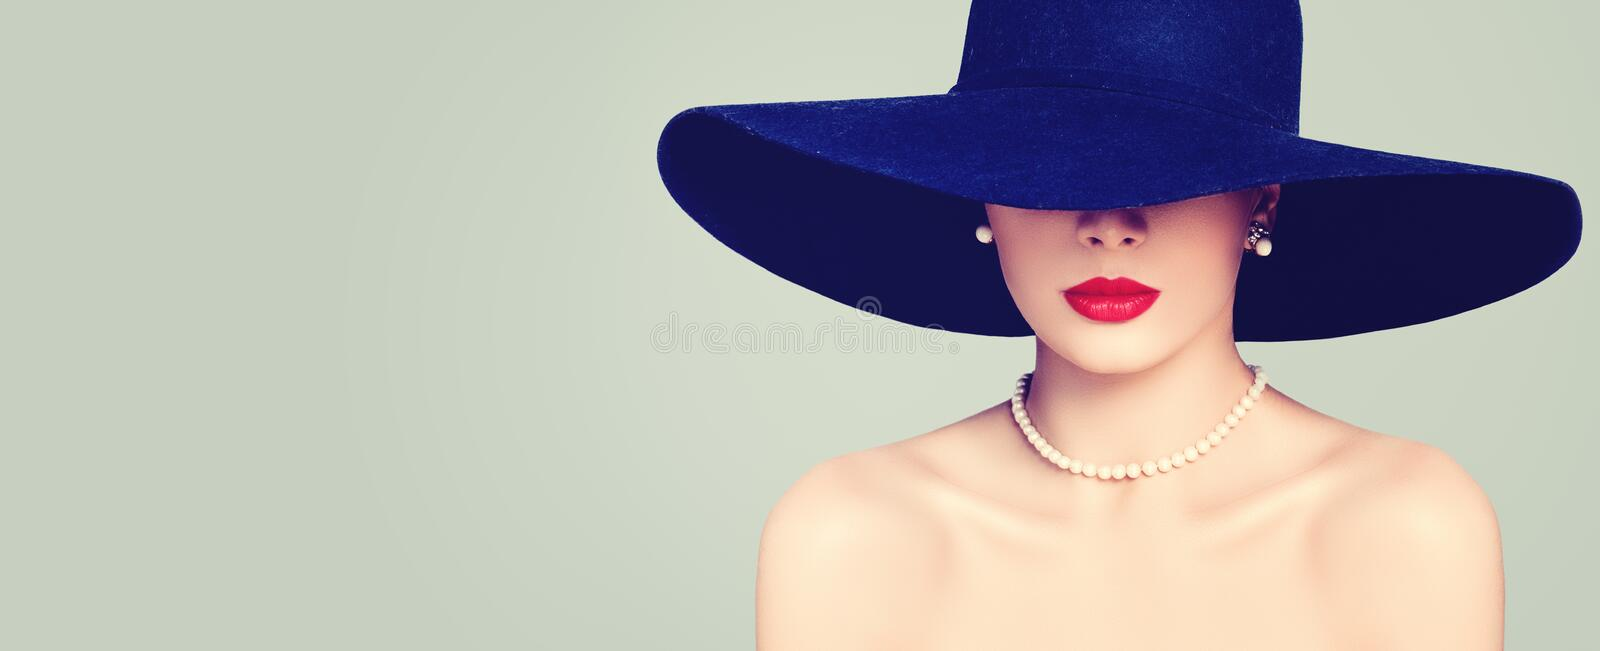 Fashion portrait of stylish woman with red lips makeup royalty free stock photography